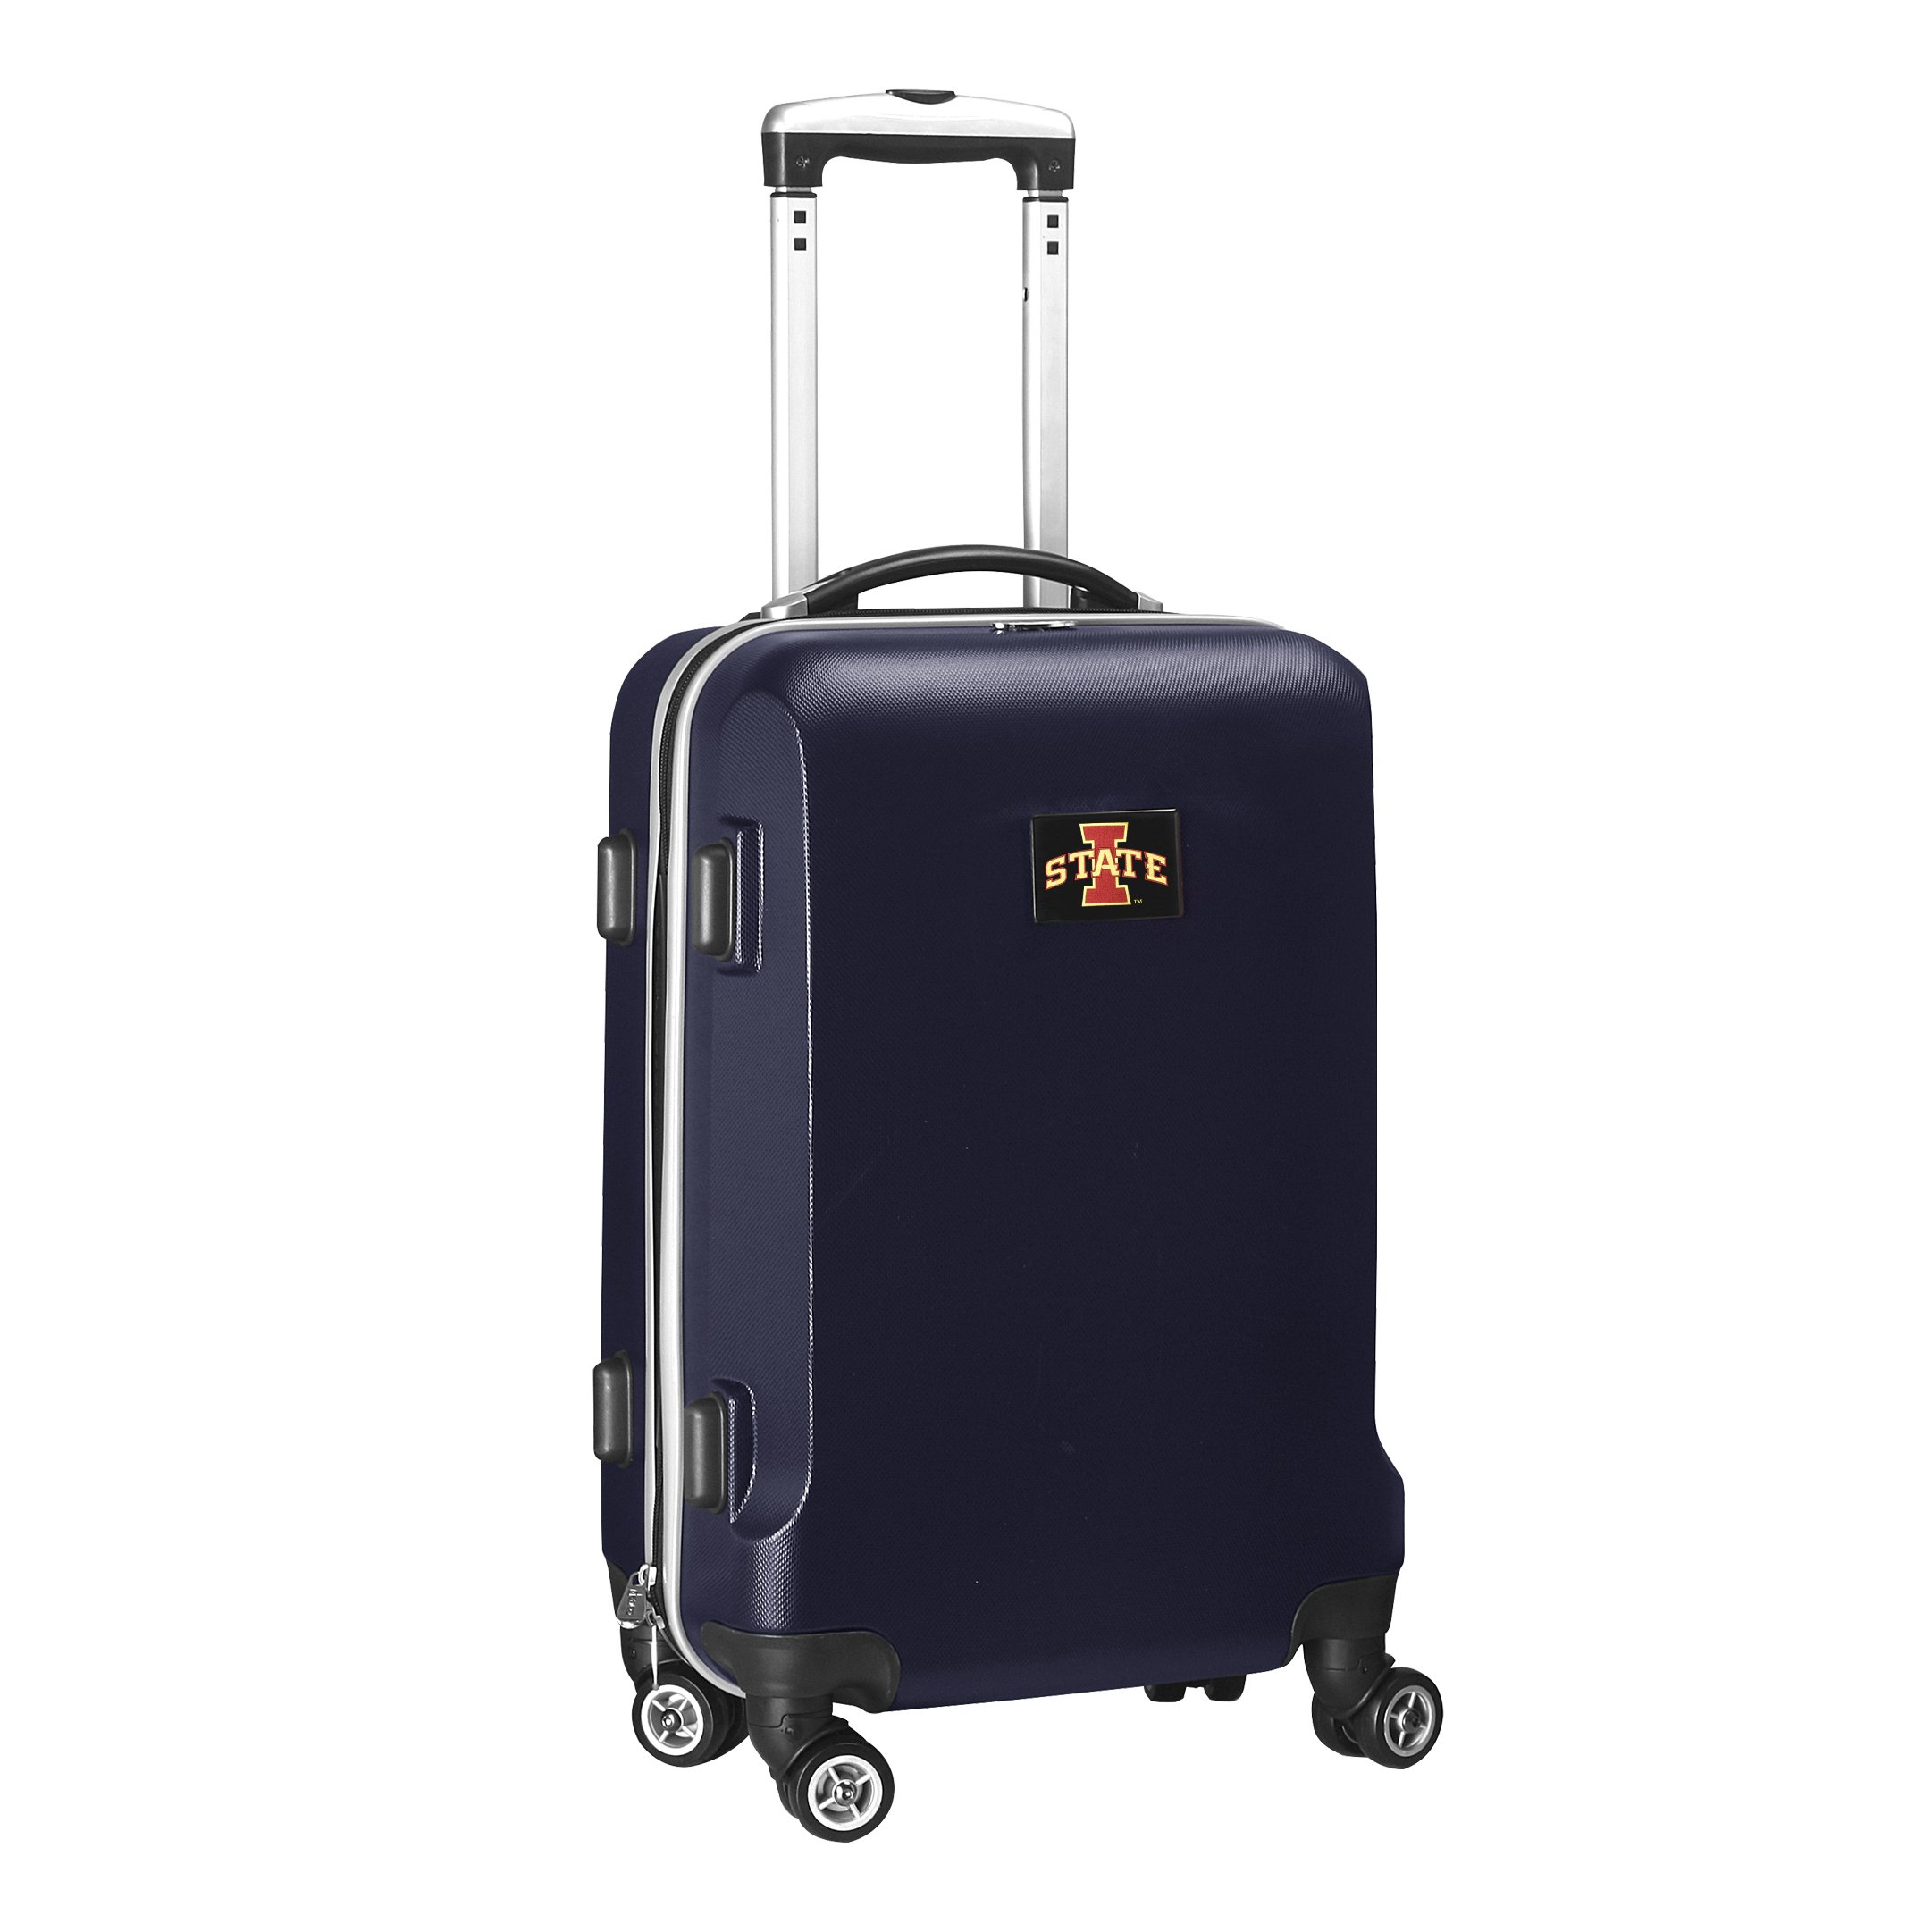 Denco NCAA Iowa State Cyclones Carry-On Hardcase Luggage Spinner, Navy